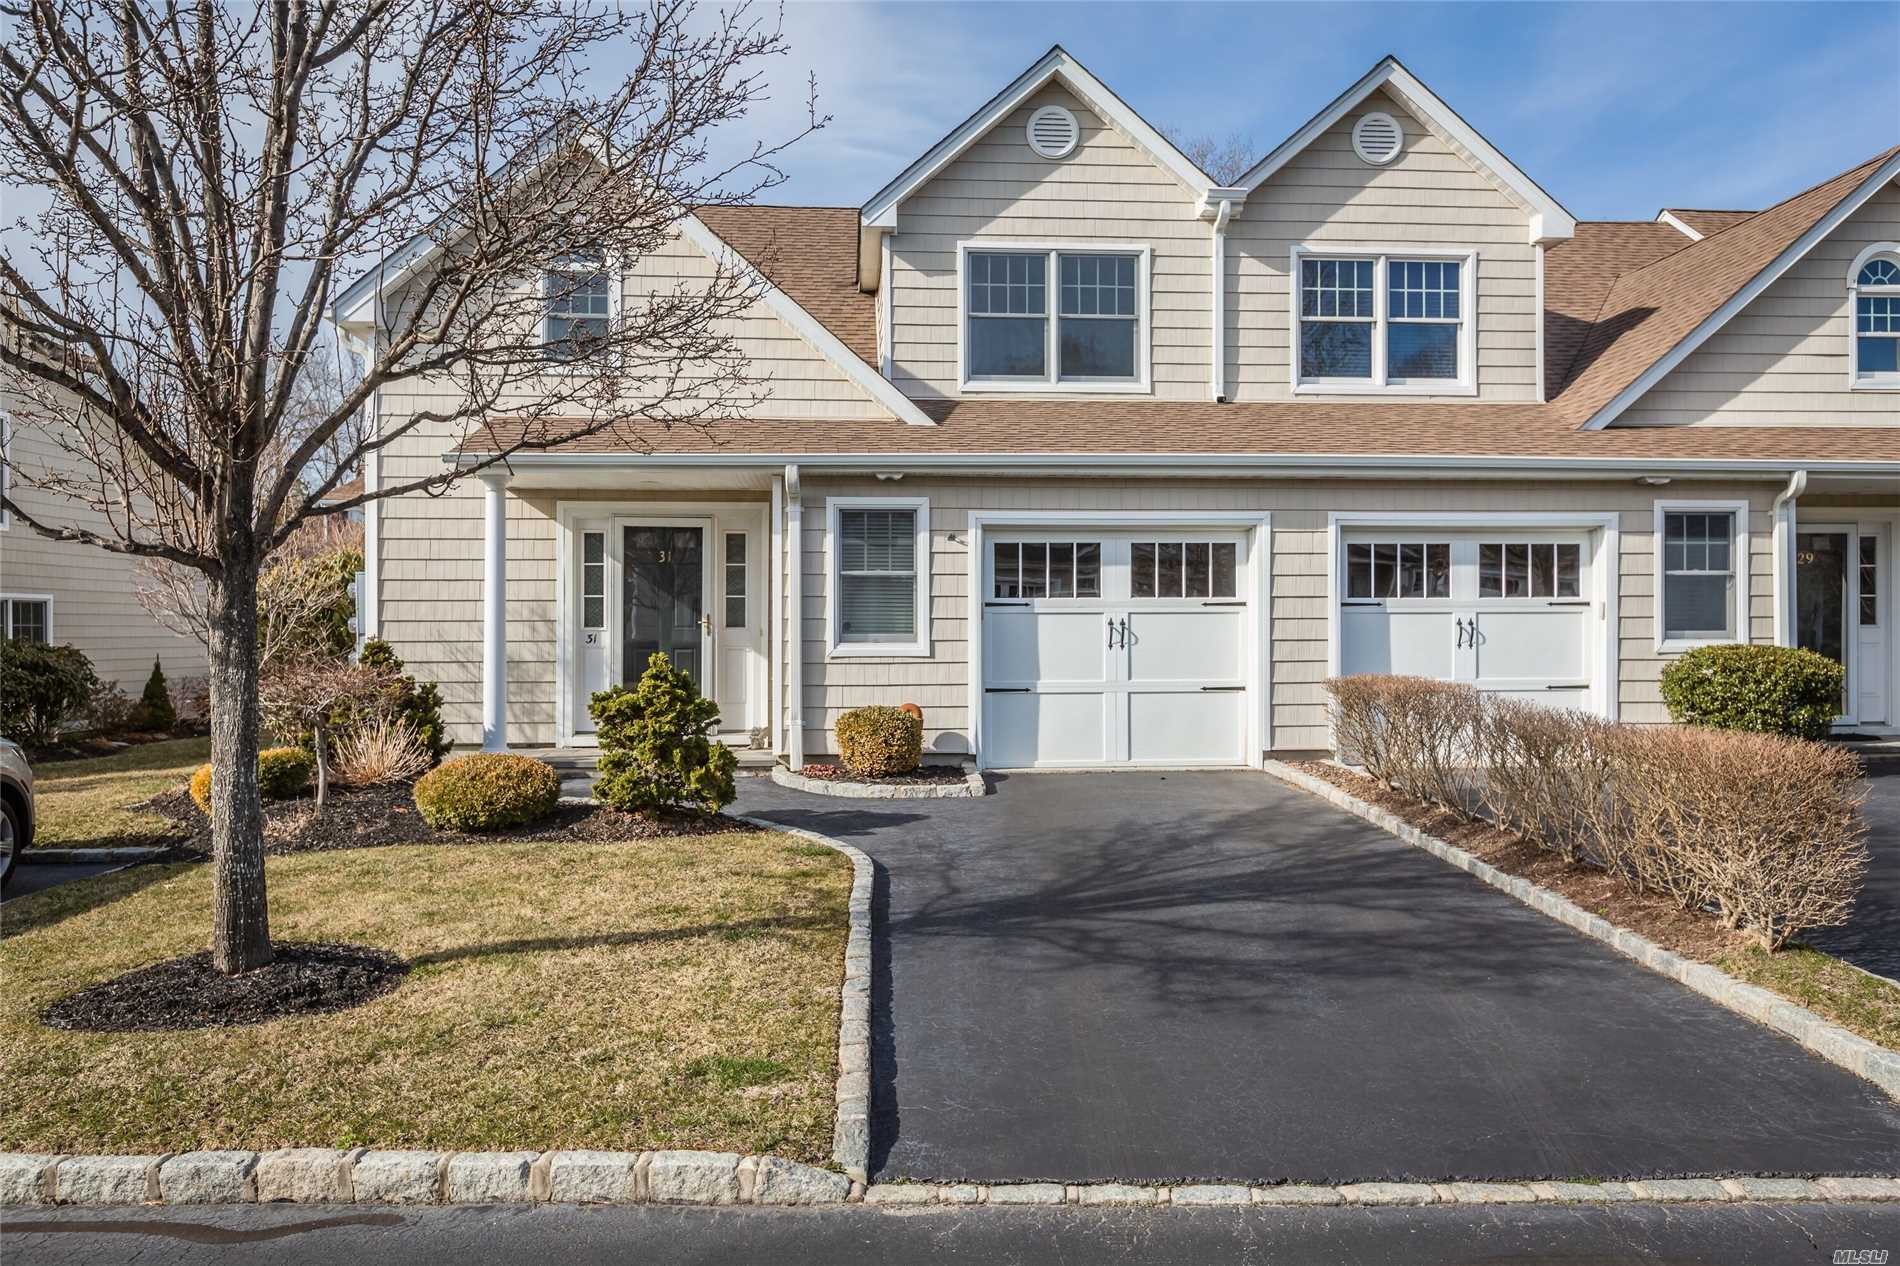 Meticulously keep! Shows like brand new! Wonderful end unit in 55 & over community.Ooen floor plan for entertaining. Granite kitchen. Master bedroom on first floor.Freshly painted! Truly turnkey! Don't miss this one!